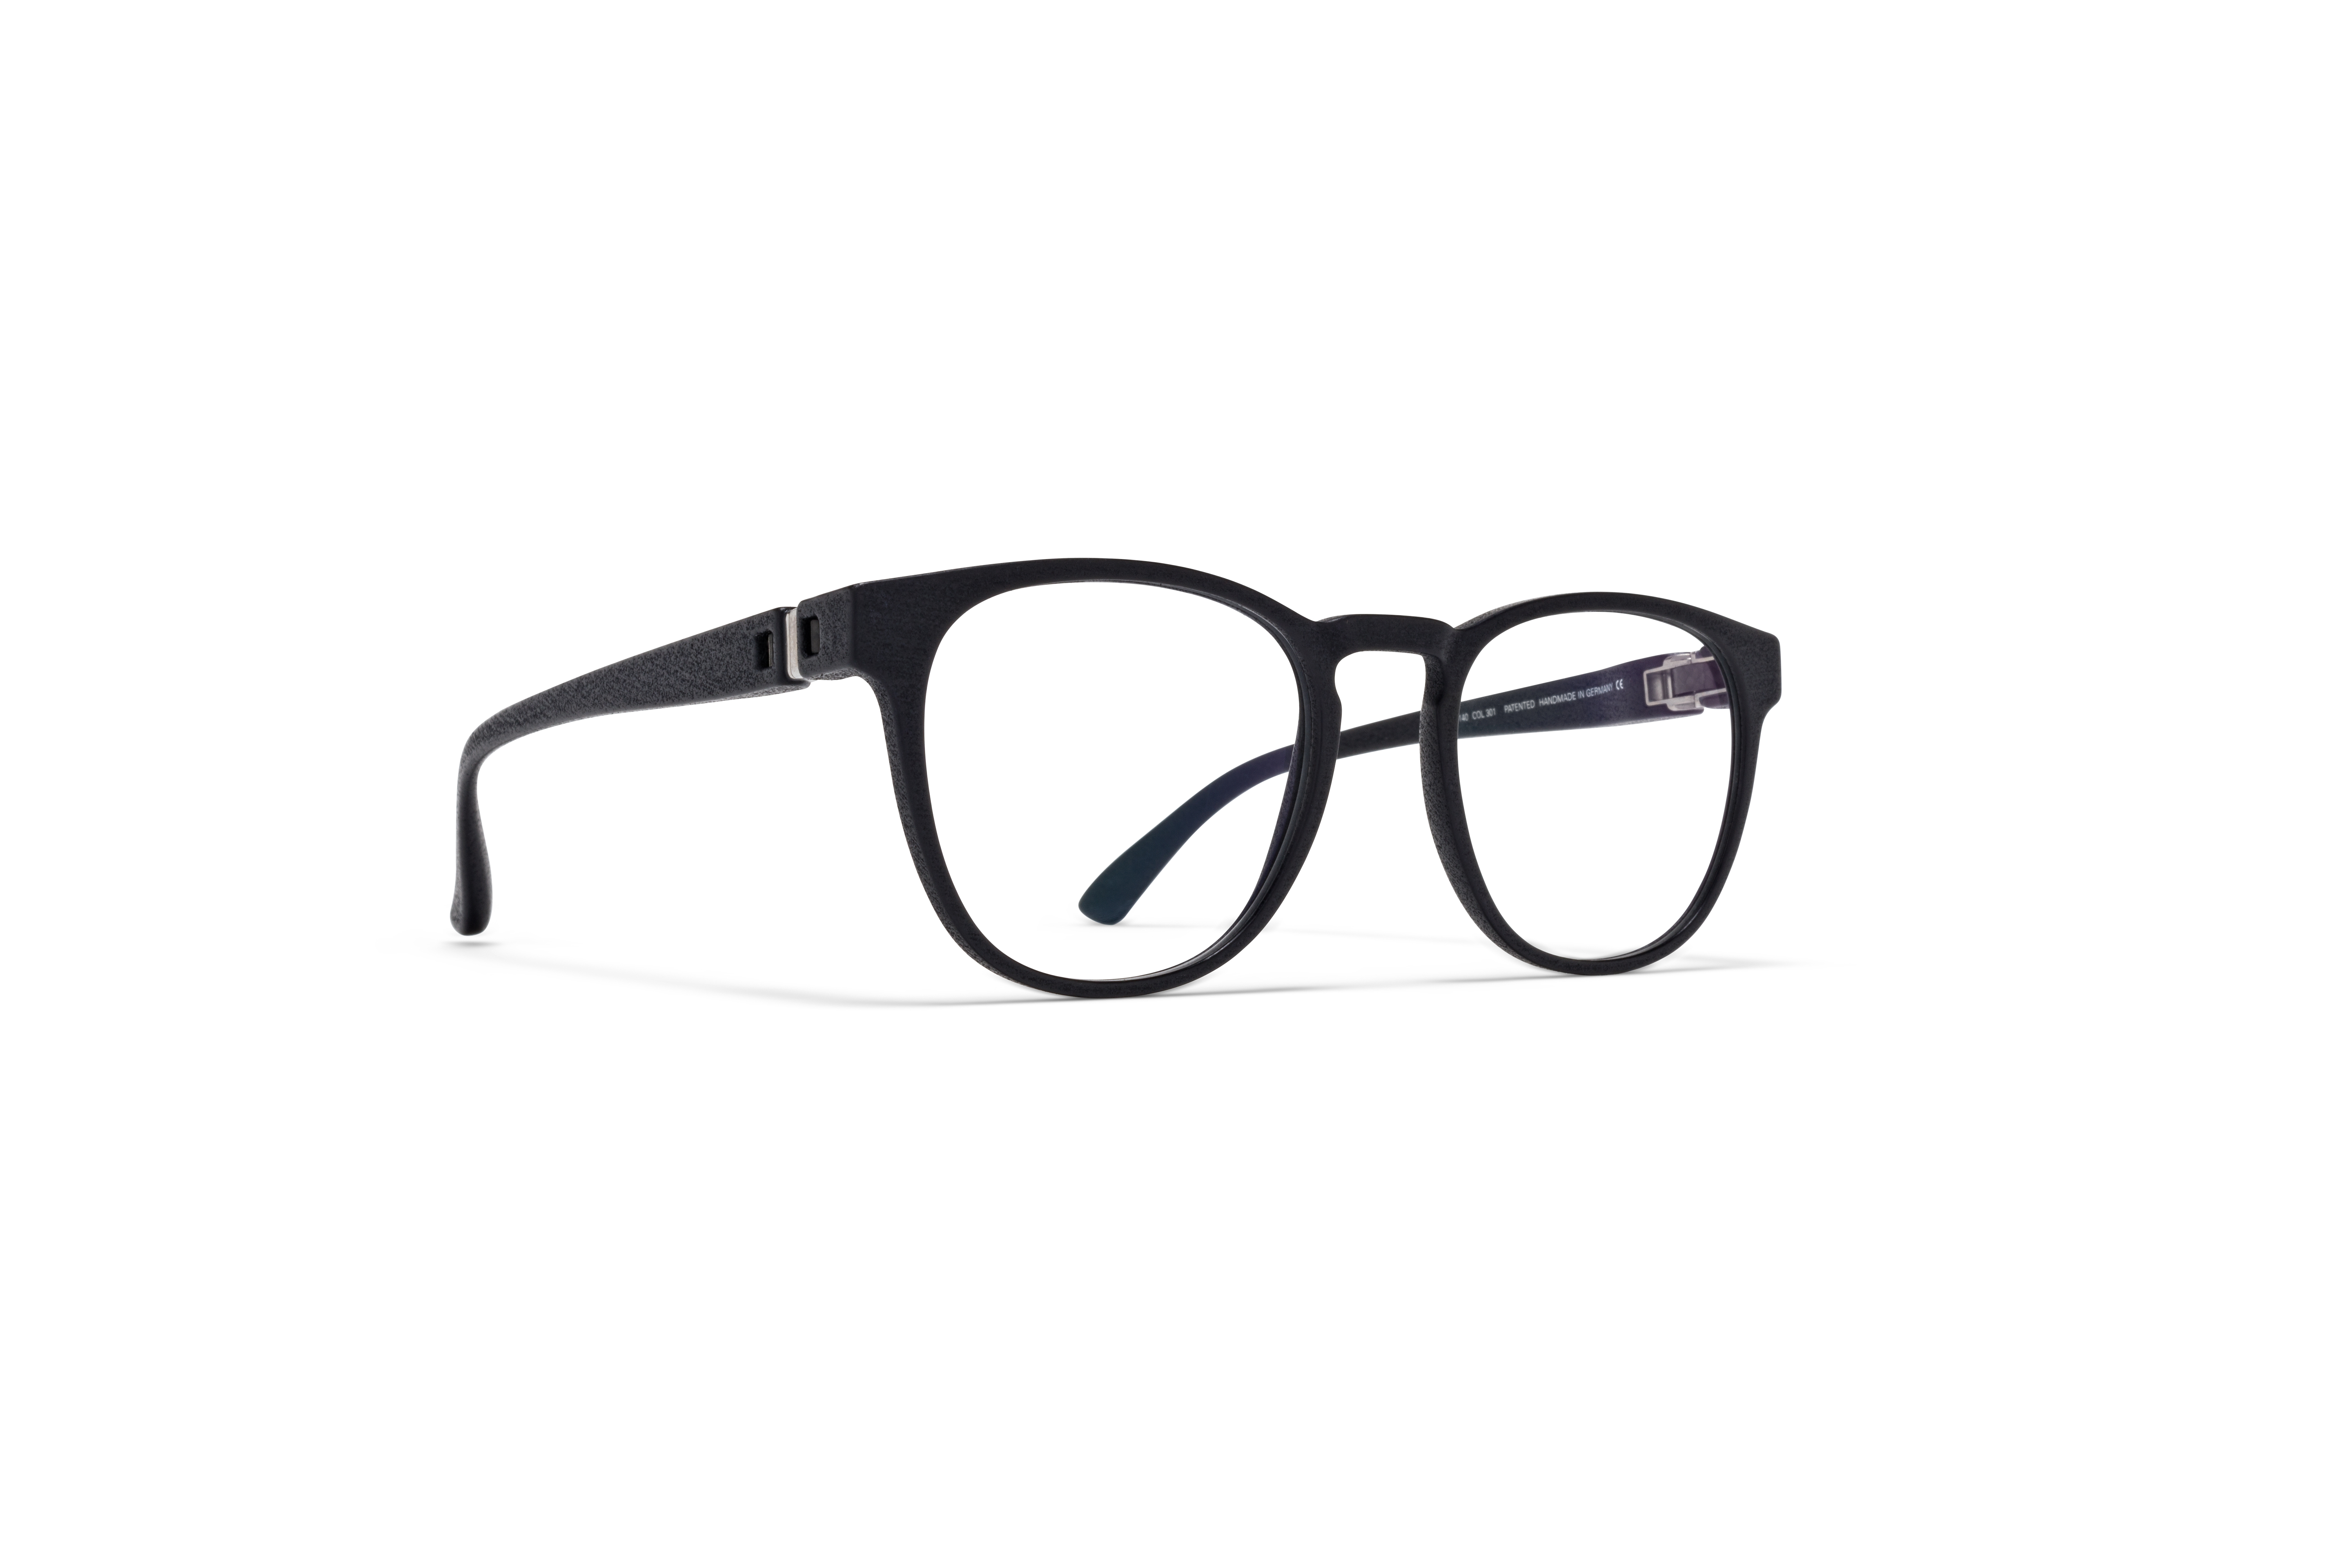 MYKITA Mylon Rx Pax Md1 Pitch Black Clear